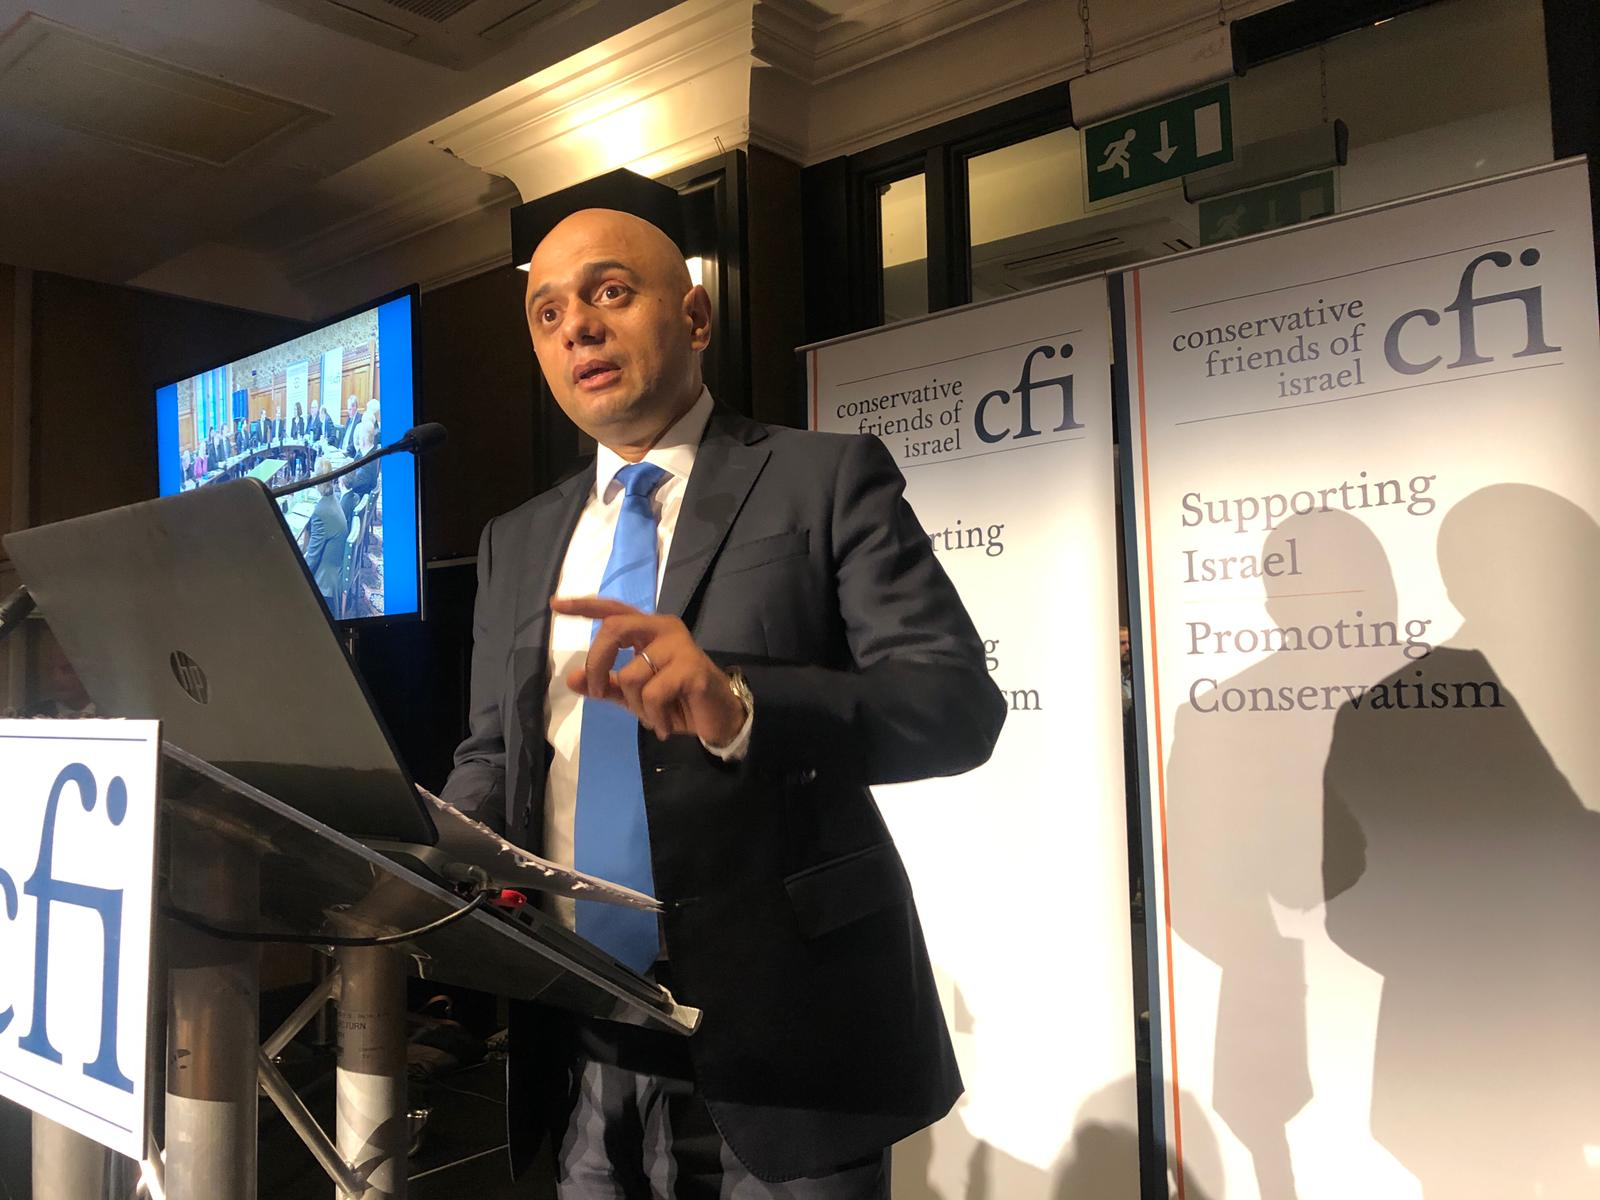 Chancellor Sajid Javid leads support for Israel at CFI Party Conference Reception